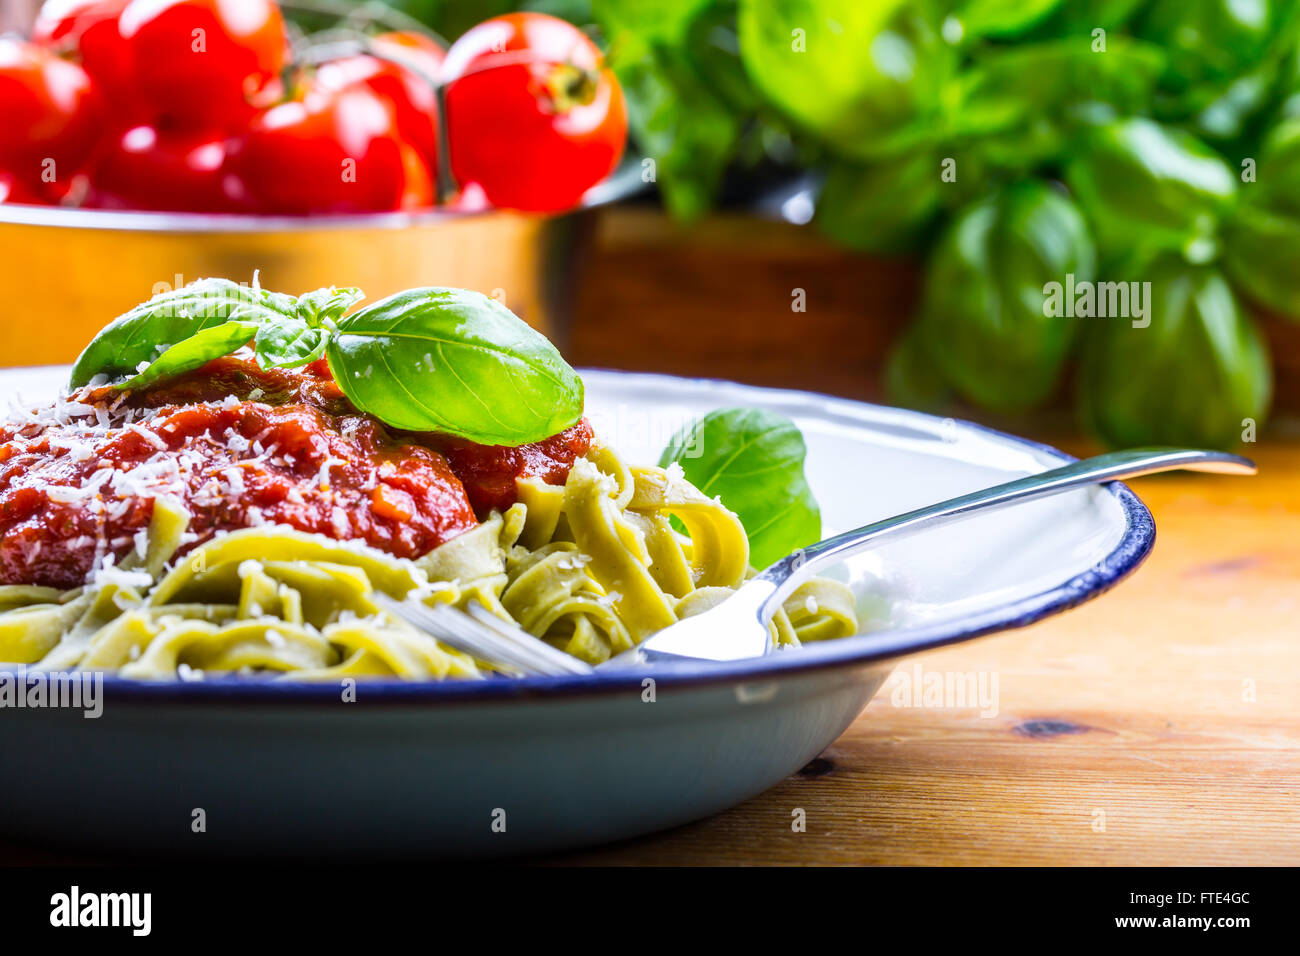 Pasta. Italian and Mediterranean cuisine. Pasta Fettuccine with tomato sauce basil leaves garlic and parmesan cheese. - Stock Image